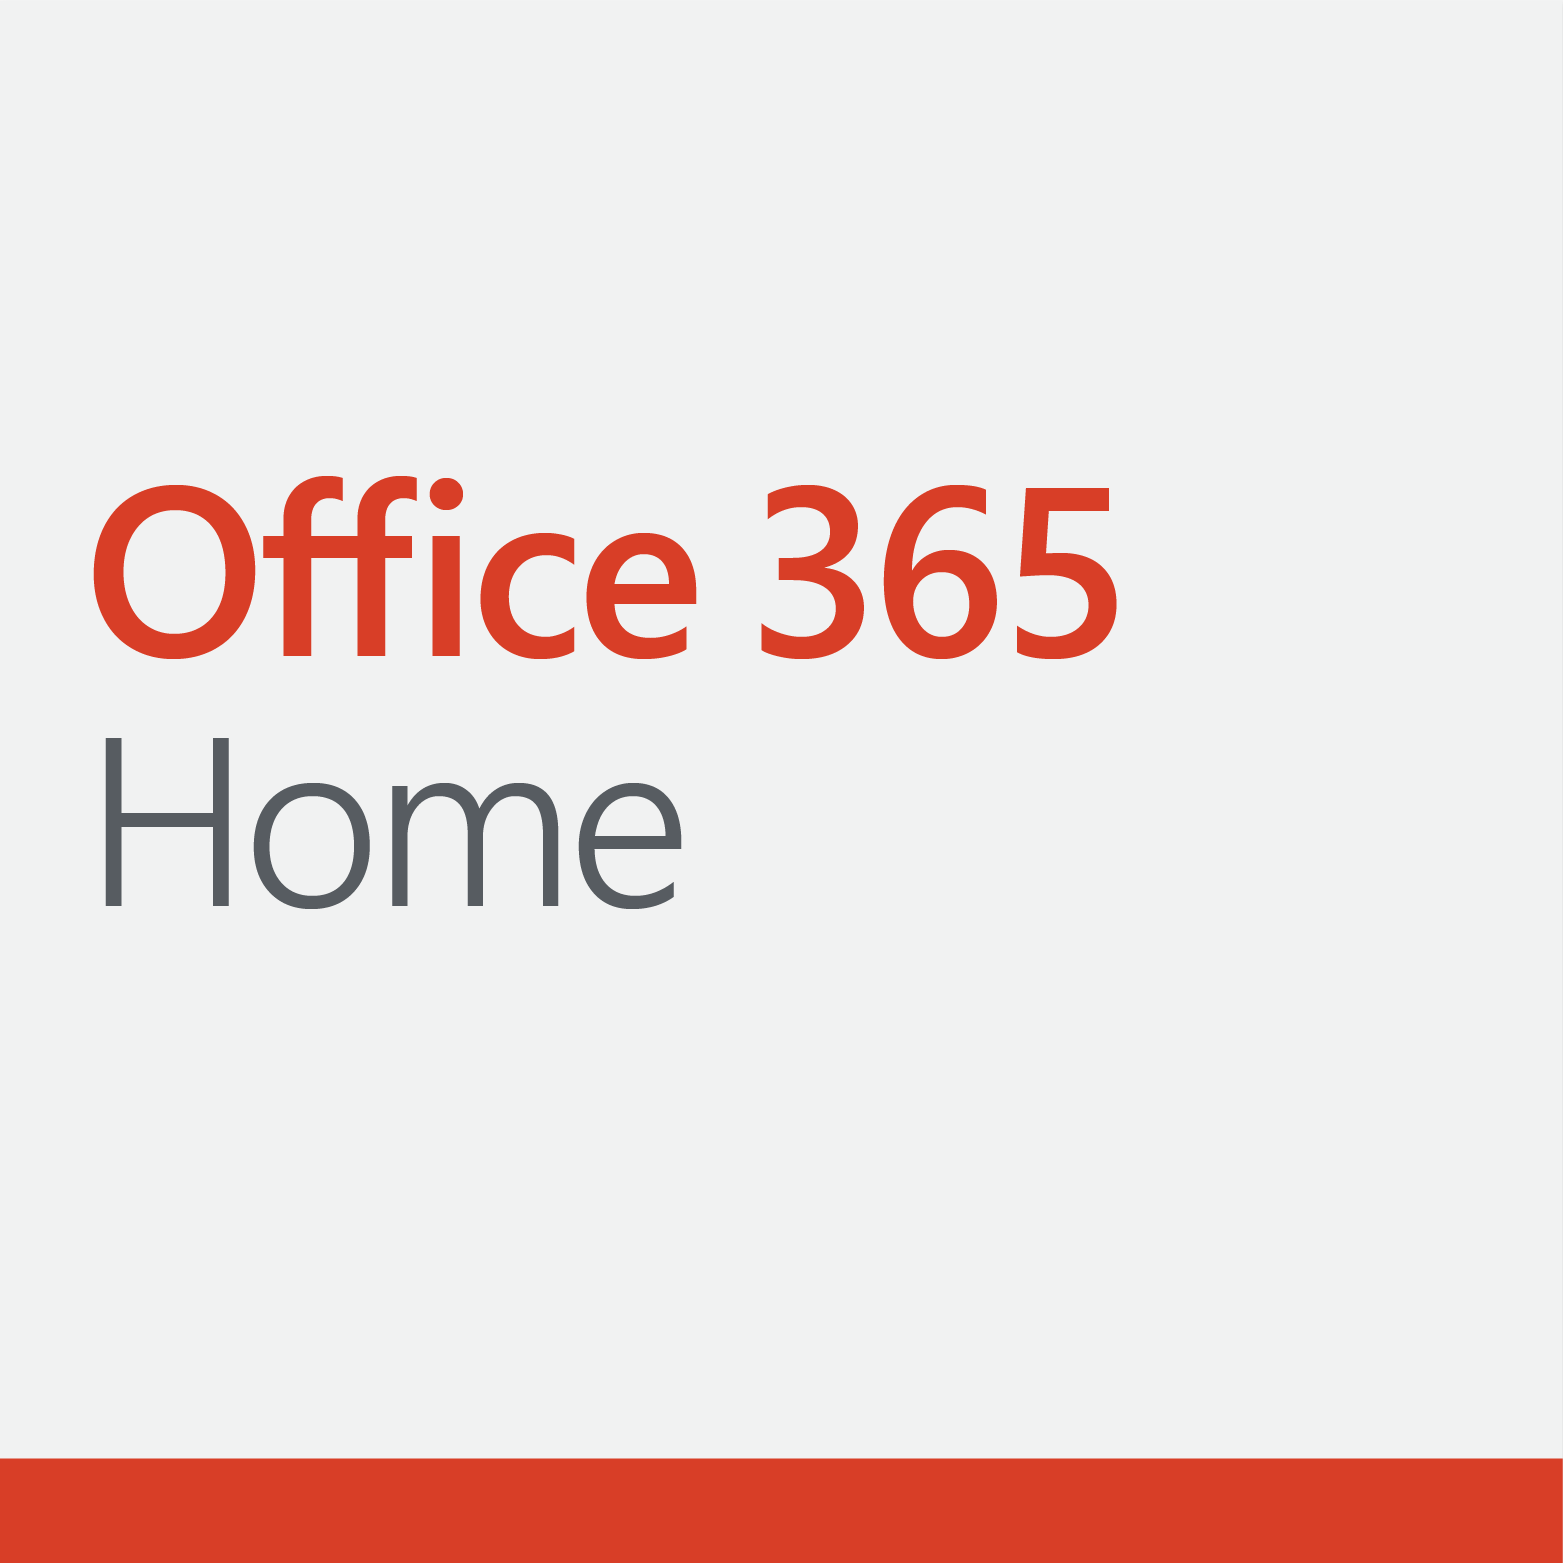 office 365 home discount code